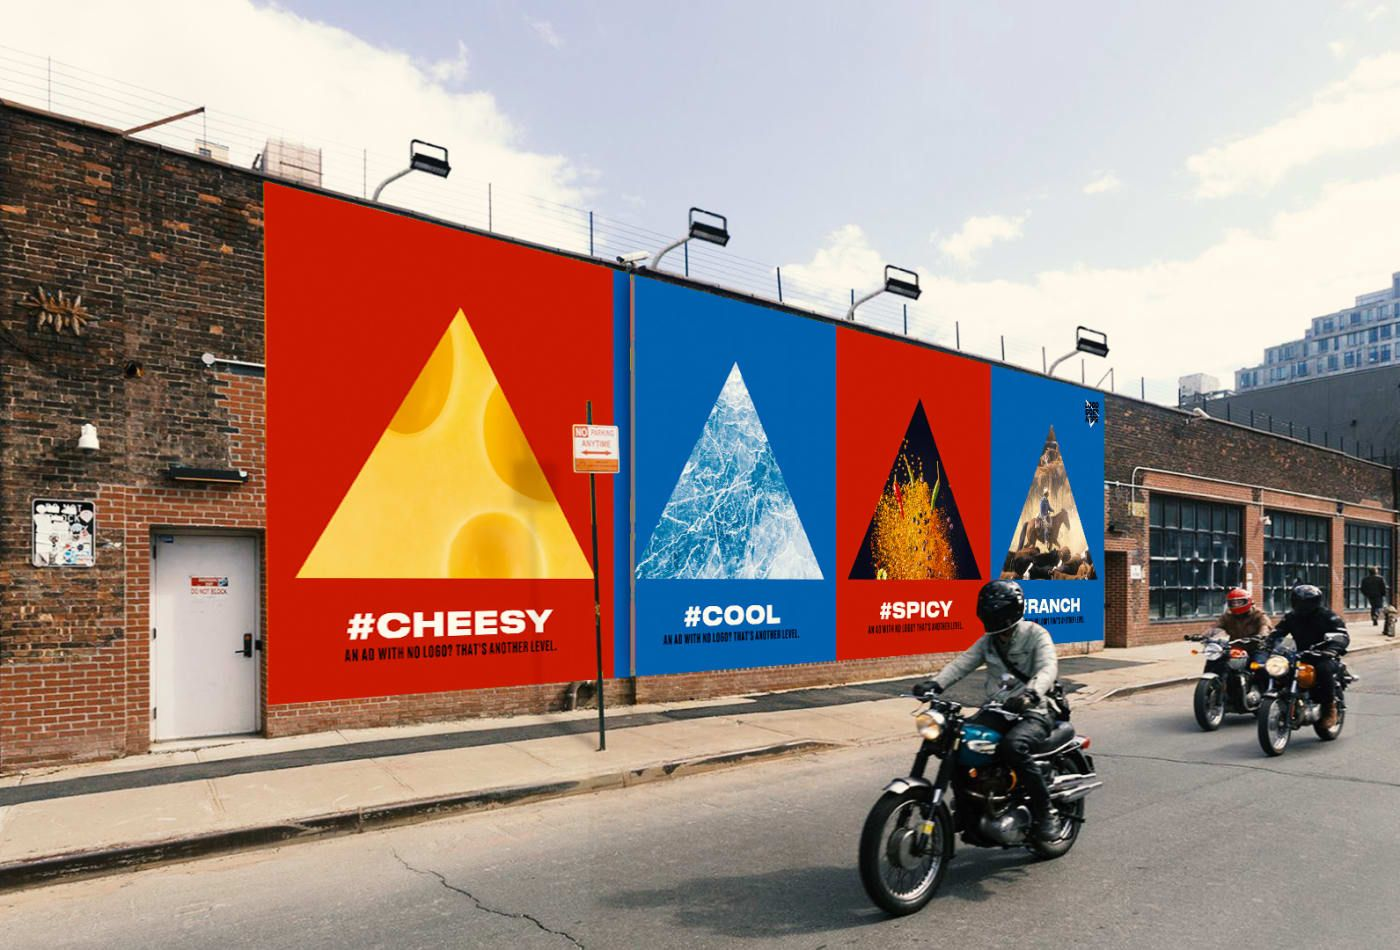 Gen Z doesn't like branding, so Doritos tries a new approach is part of Promotional products marketing, Doritos, Branding, Traditional advertising, Drop logo, Brand campaign - Doritos calls this audience  emerging adults  and said that  newer generations are increasingly turned off by blatant, promotional marketing